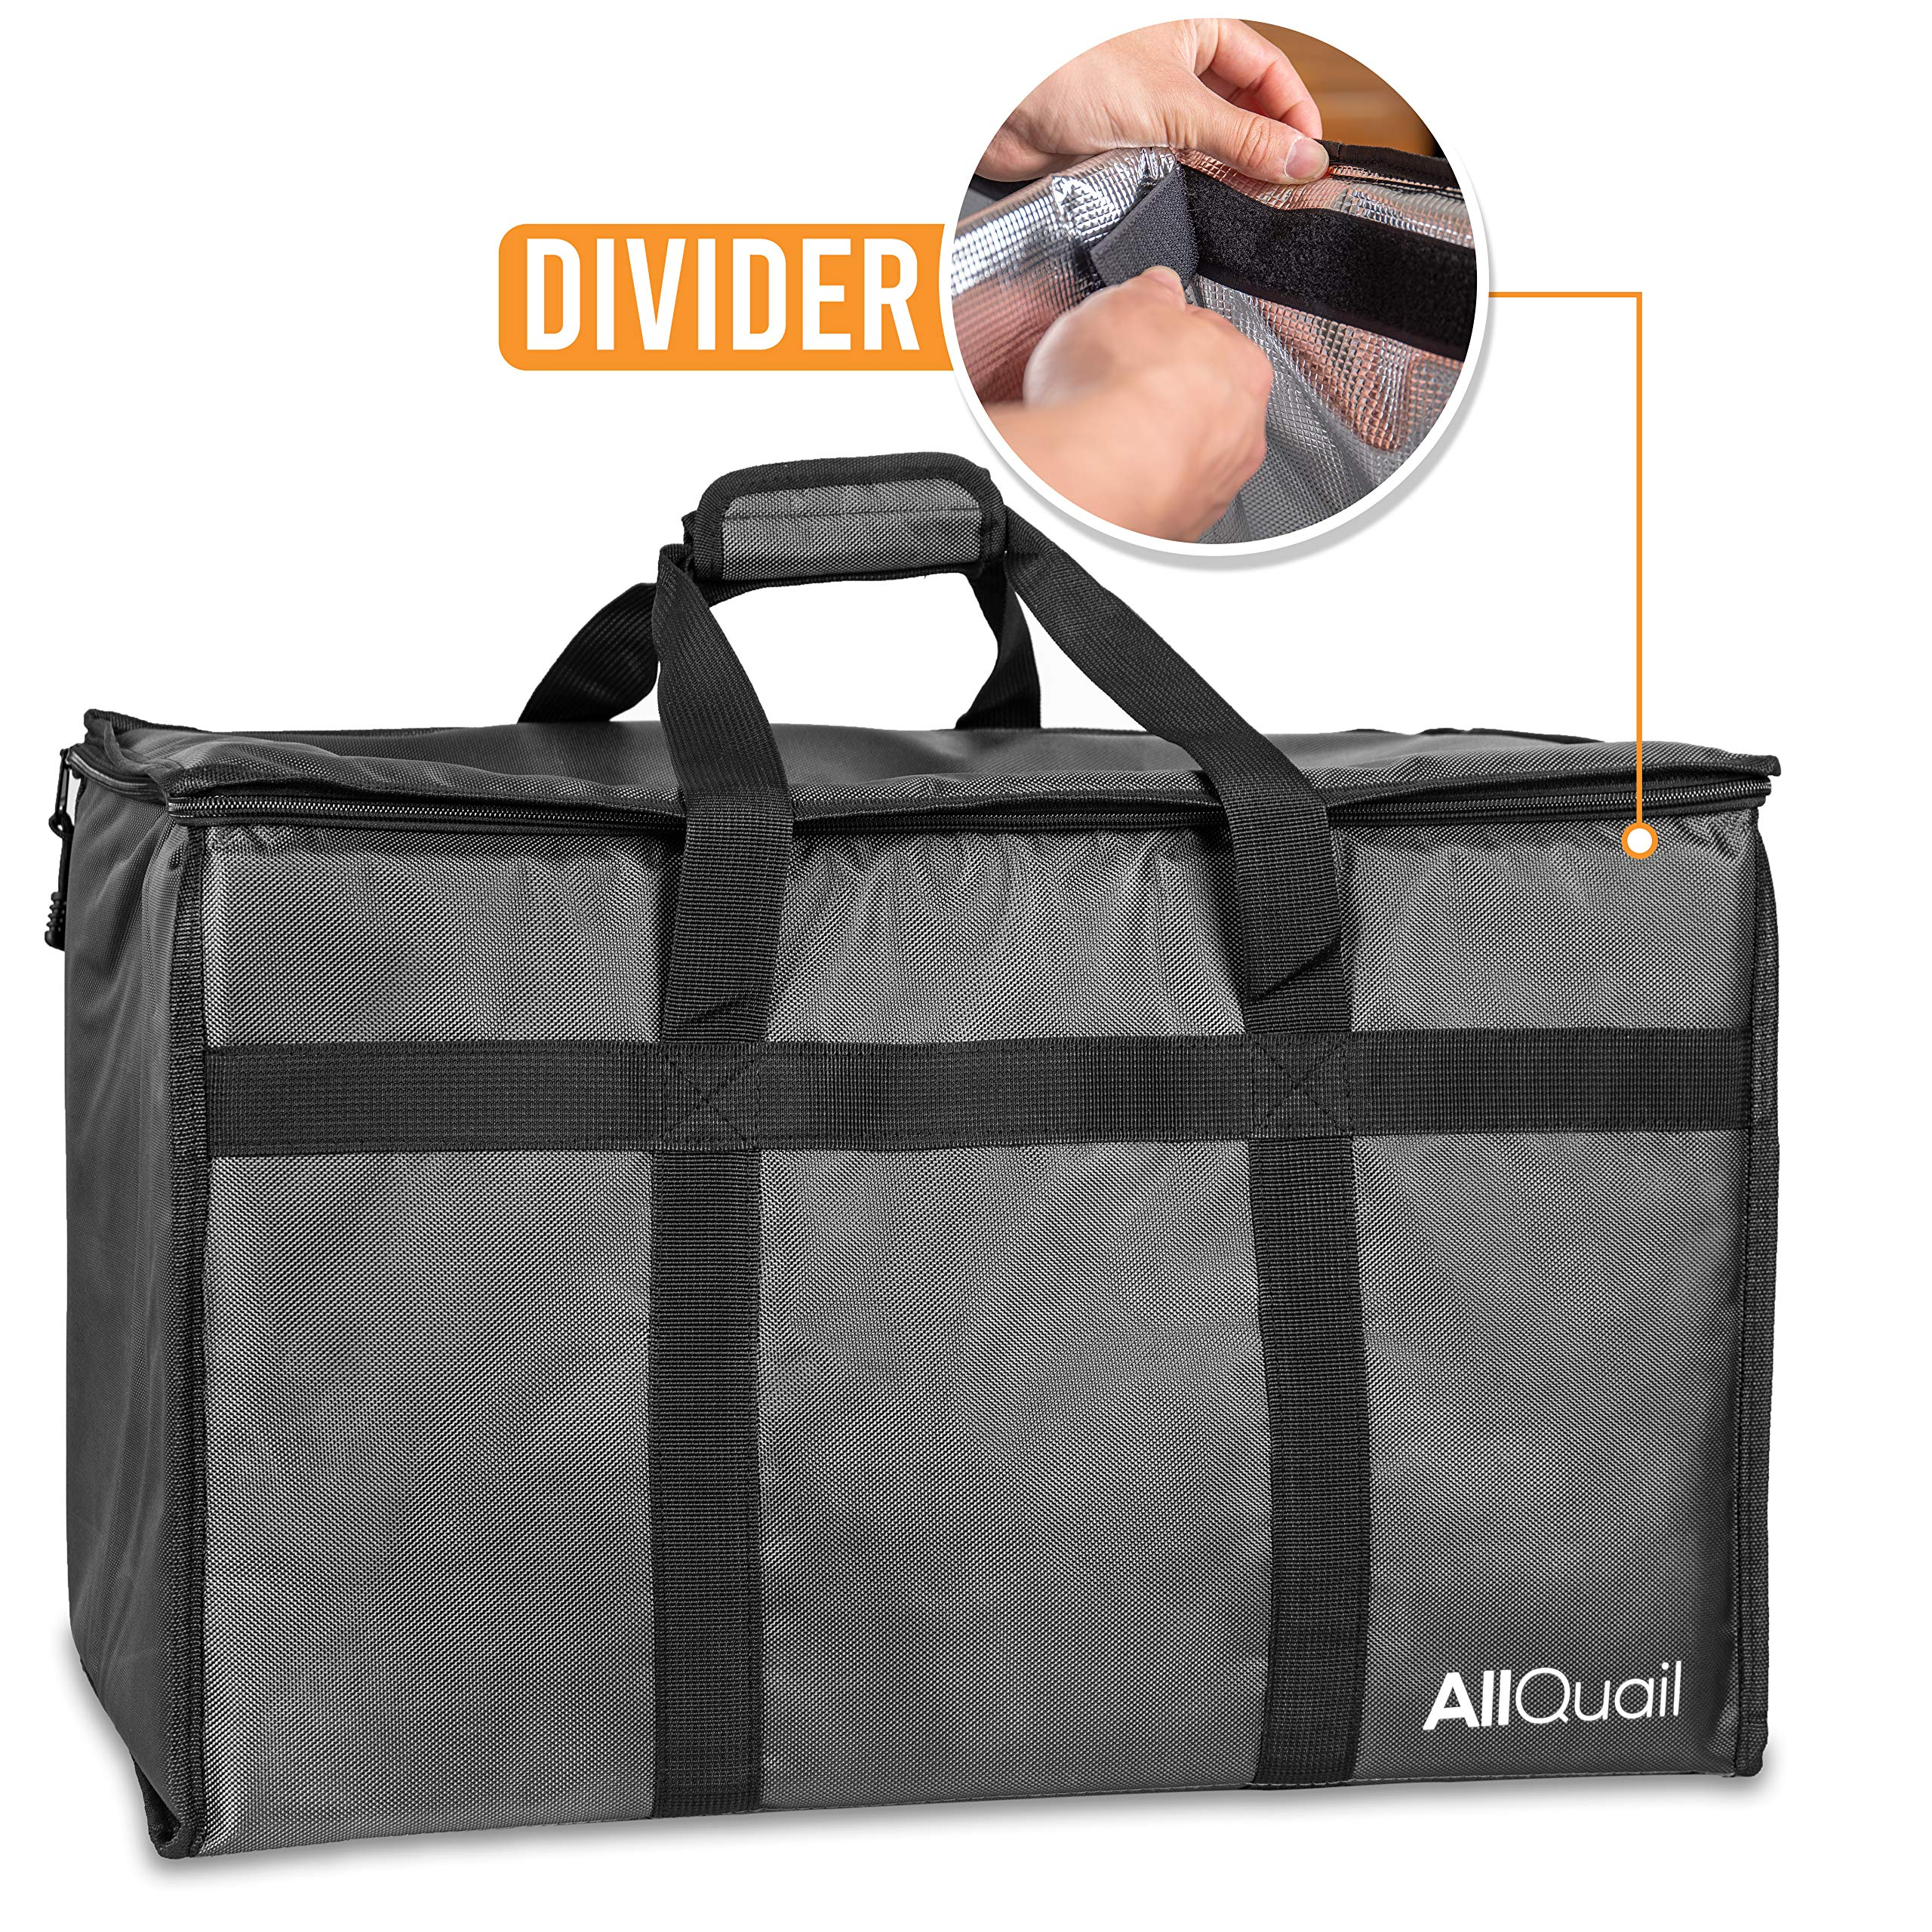 AllQuail Food Delivery Bag - With Divider, Durable Heavy Duty, For Groceries, Catering, Cooler Bag, Warmer, Insulated Delivery Bag, Thermal, For Travel, Uber Eats, Grubhub, Large Premium, Doordash by AllQuail